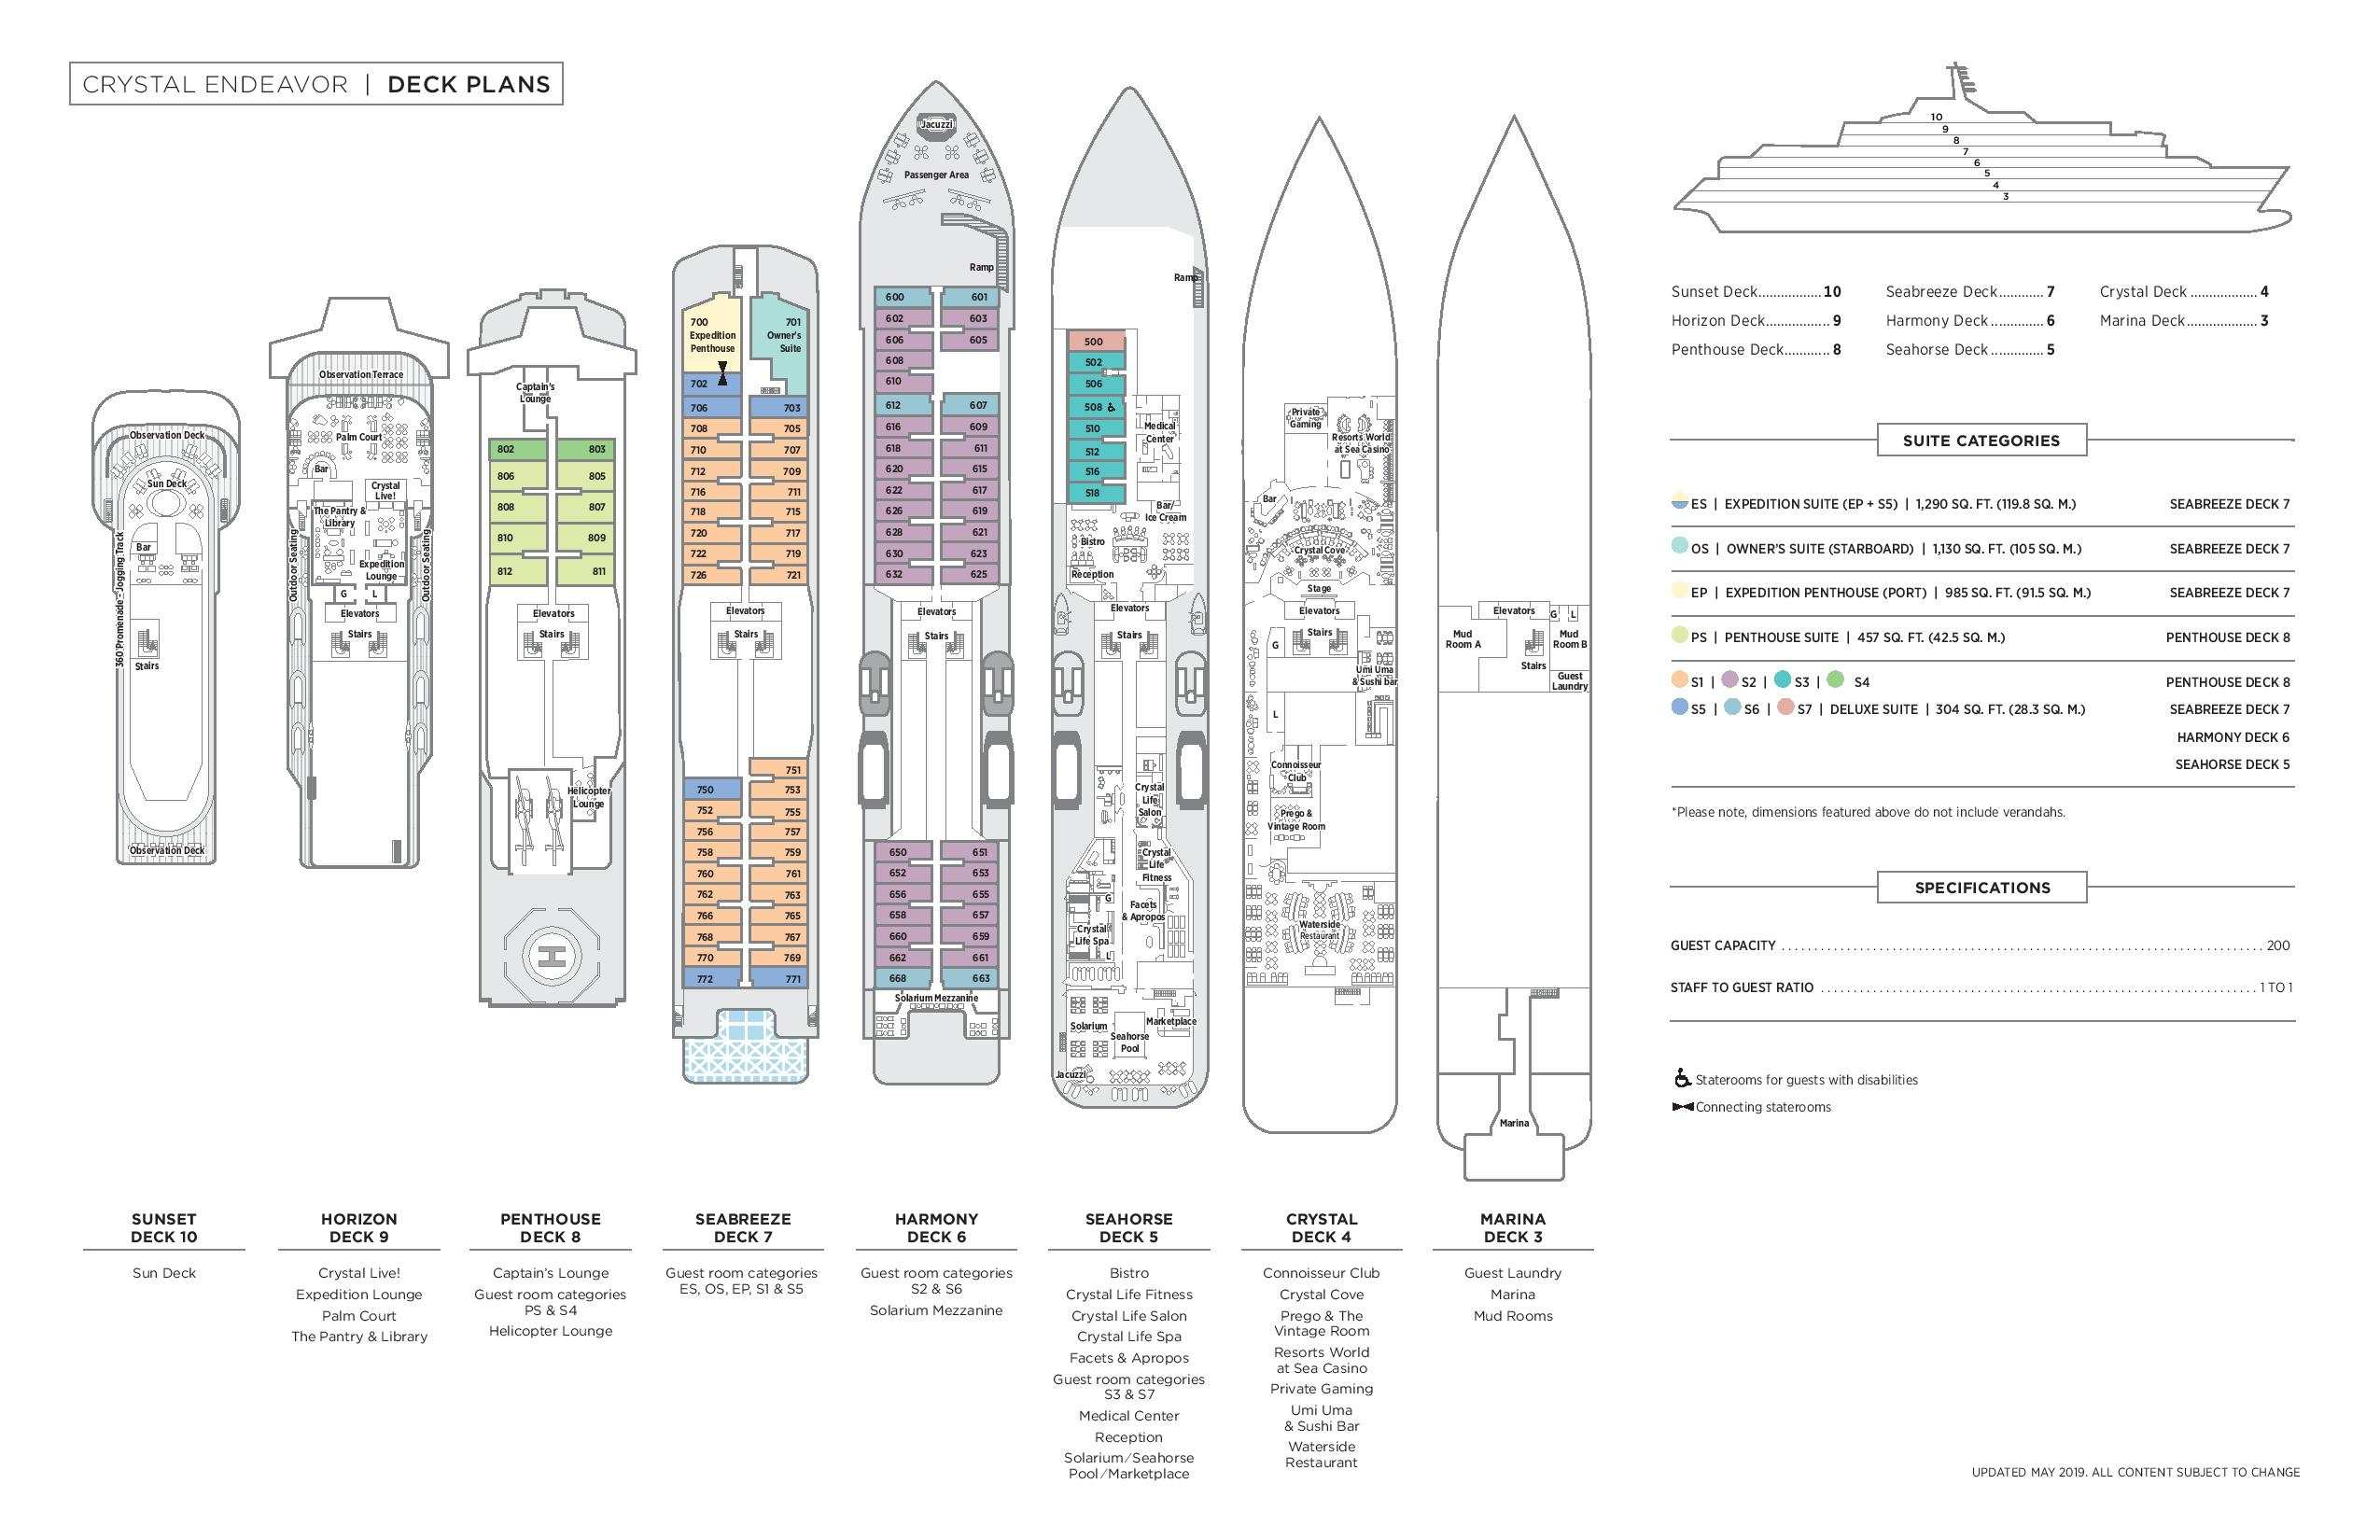 Cabin layout for Crystal Endeavor